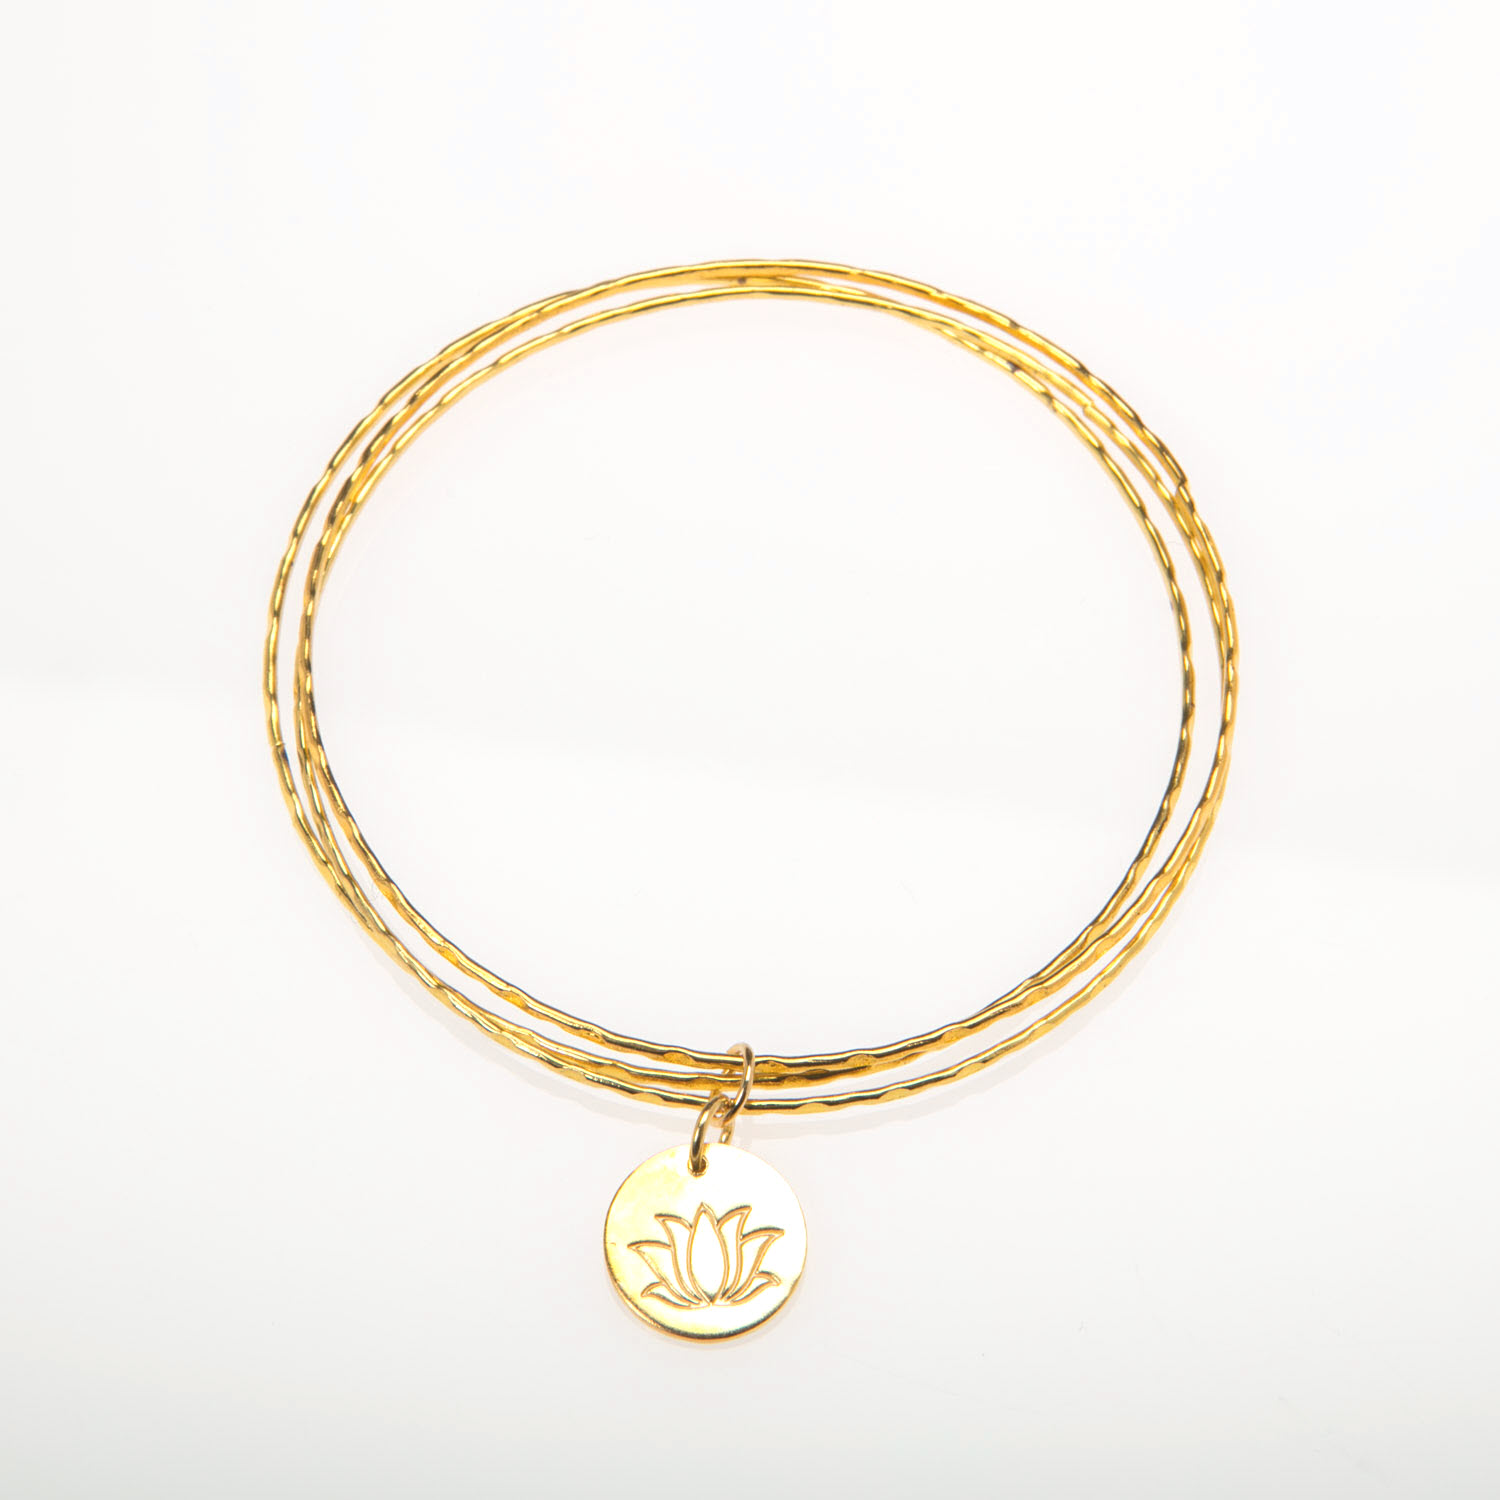 Gold Bangles with Lotus Flower Disc Charm